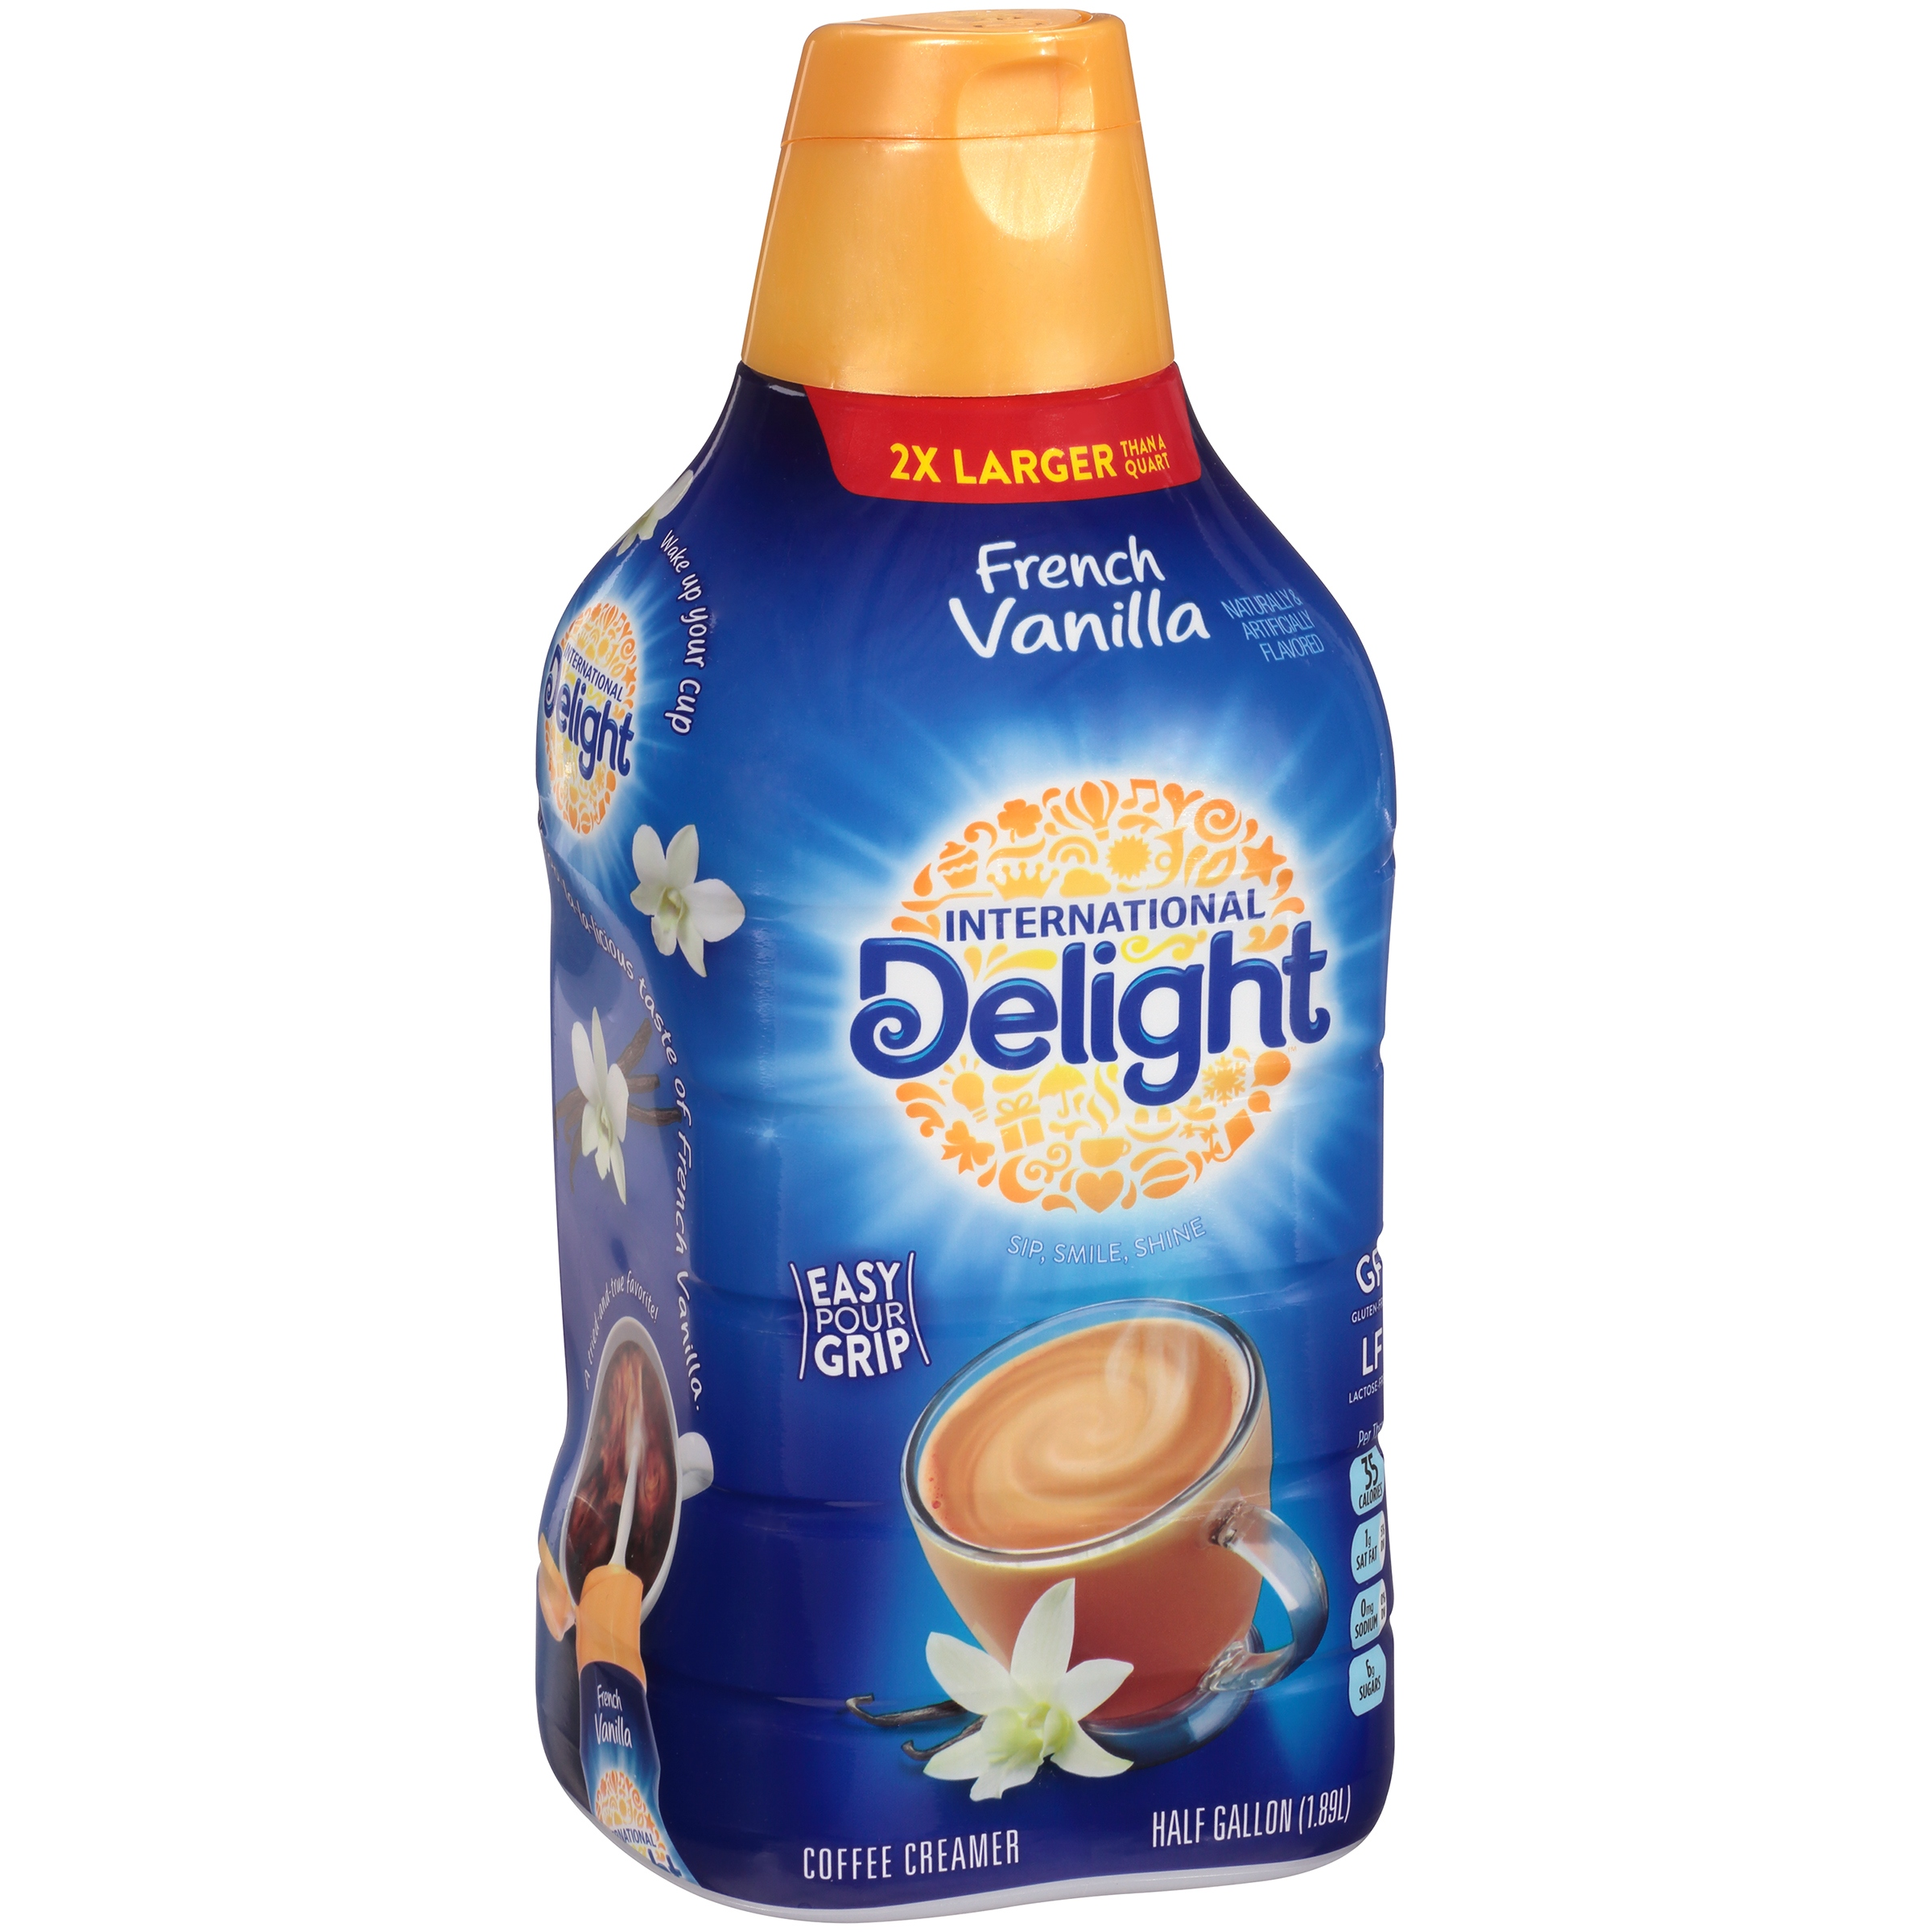 International Delight French Vanilla Coffee Creamer, 0.5 gal